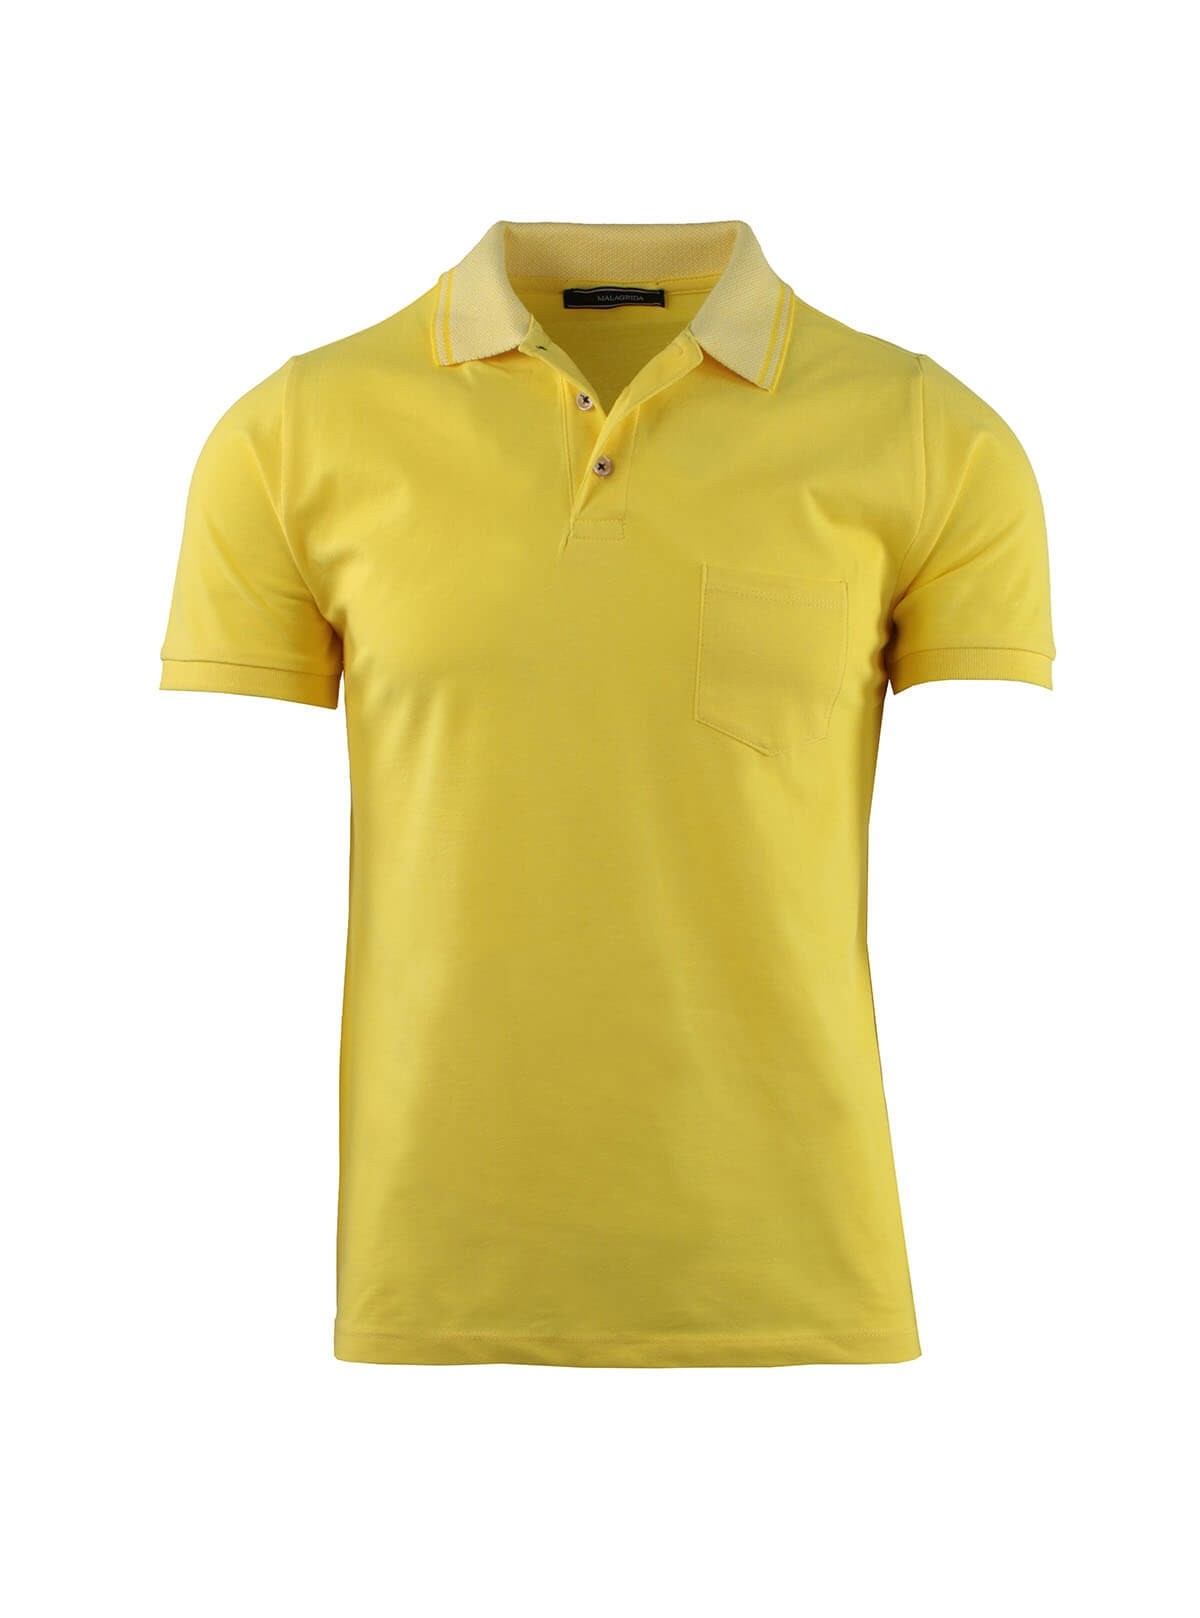 POLO IN PIQUET ELASTICA COLLO JACQUARD